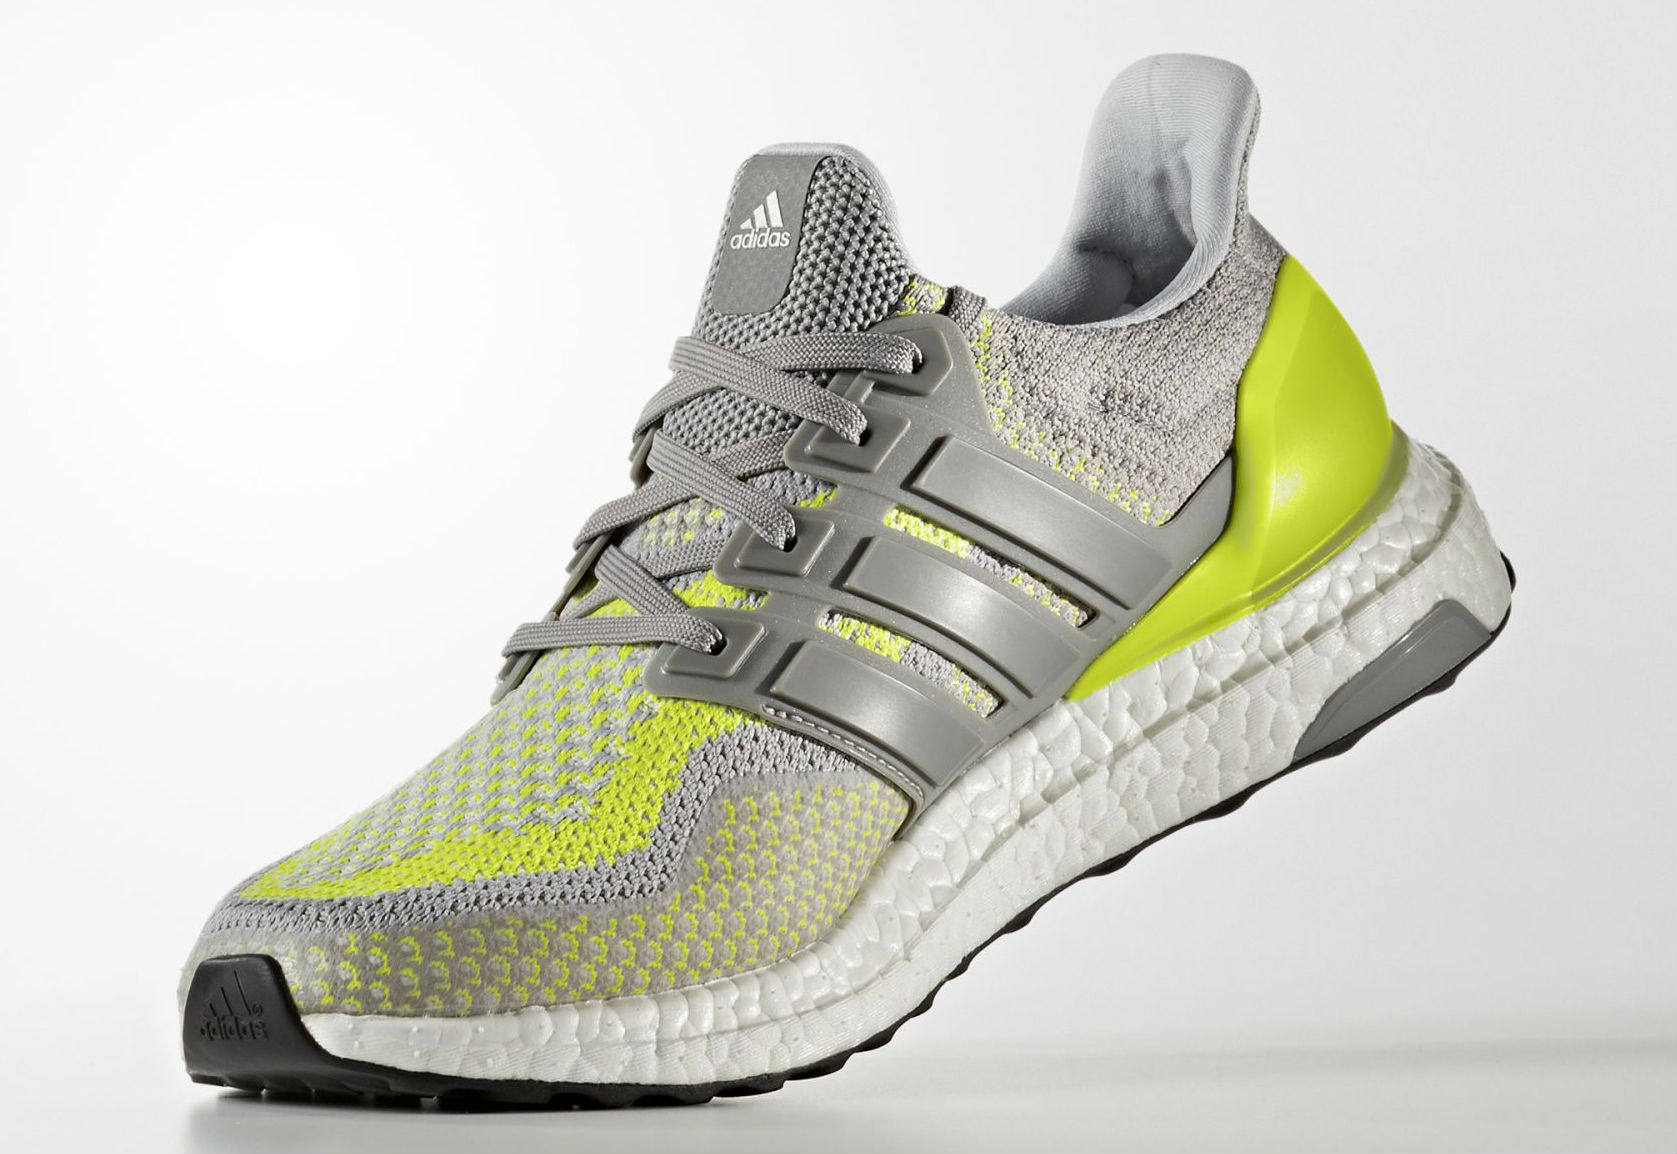 Glow in the Dark Ultra Boost Medial BB4145